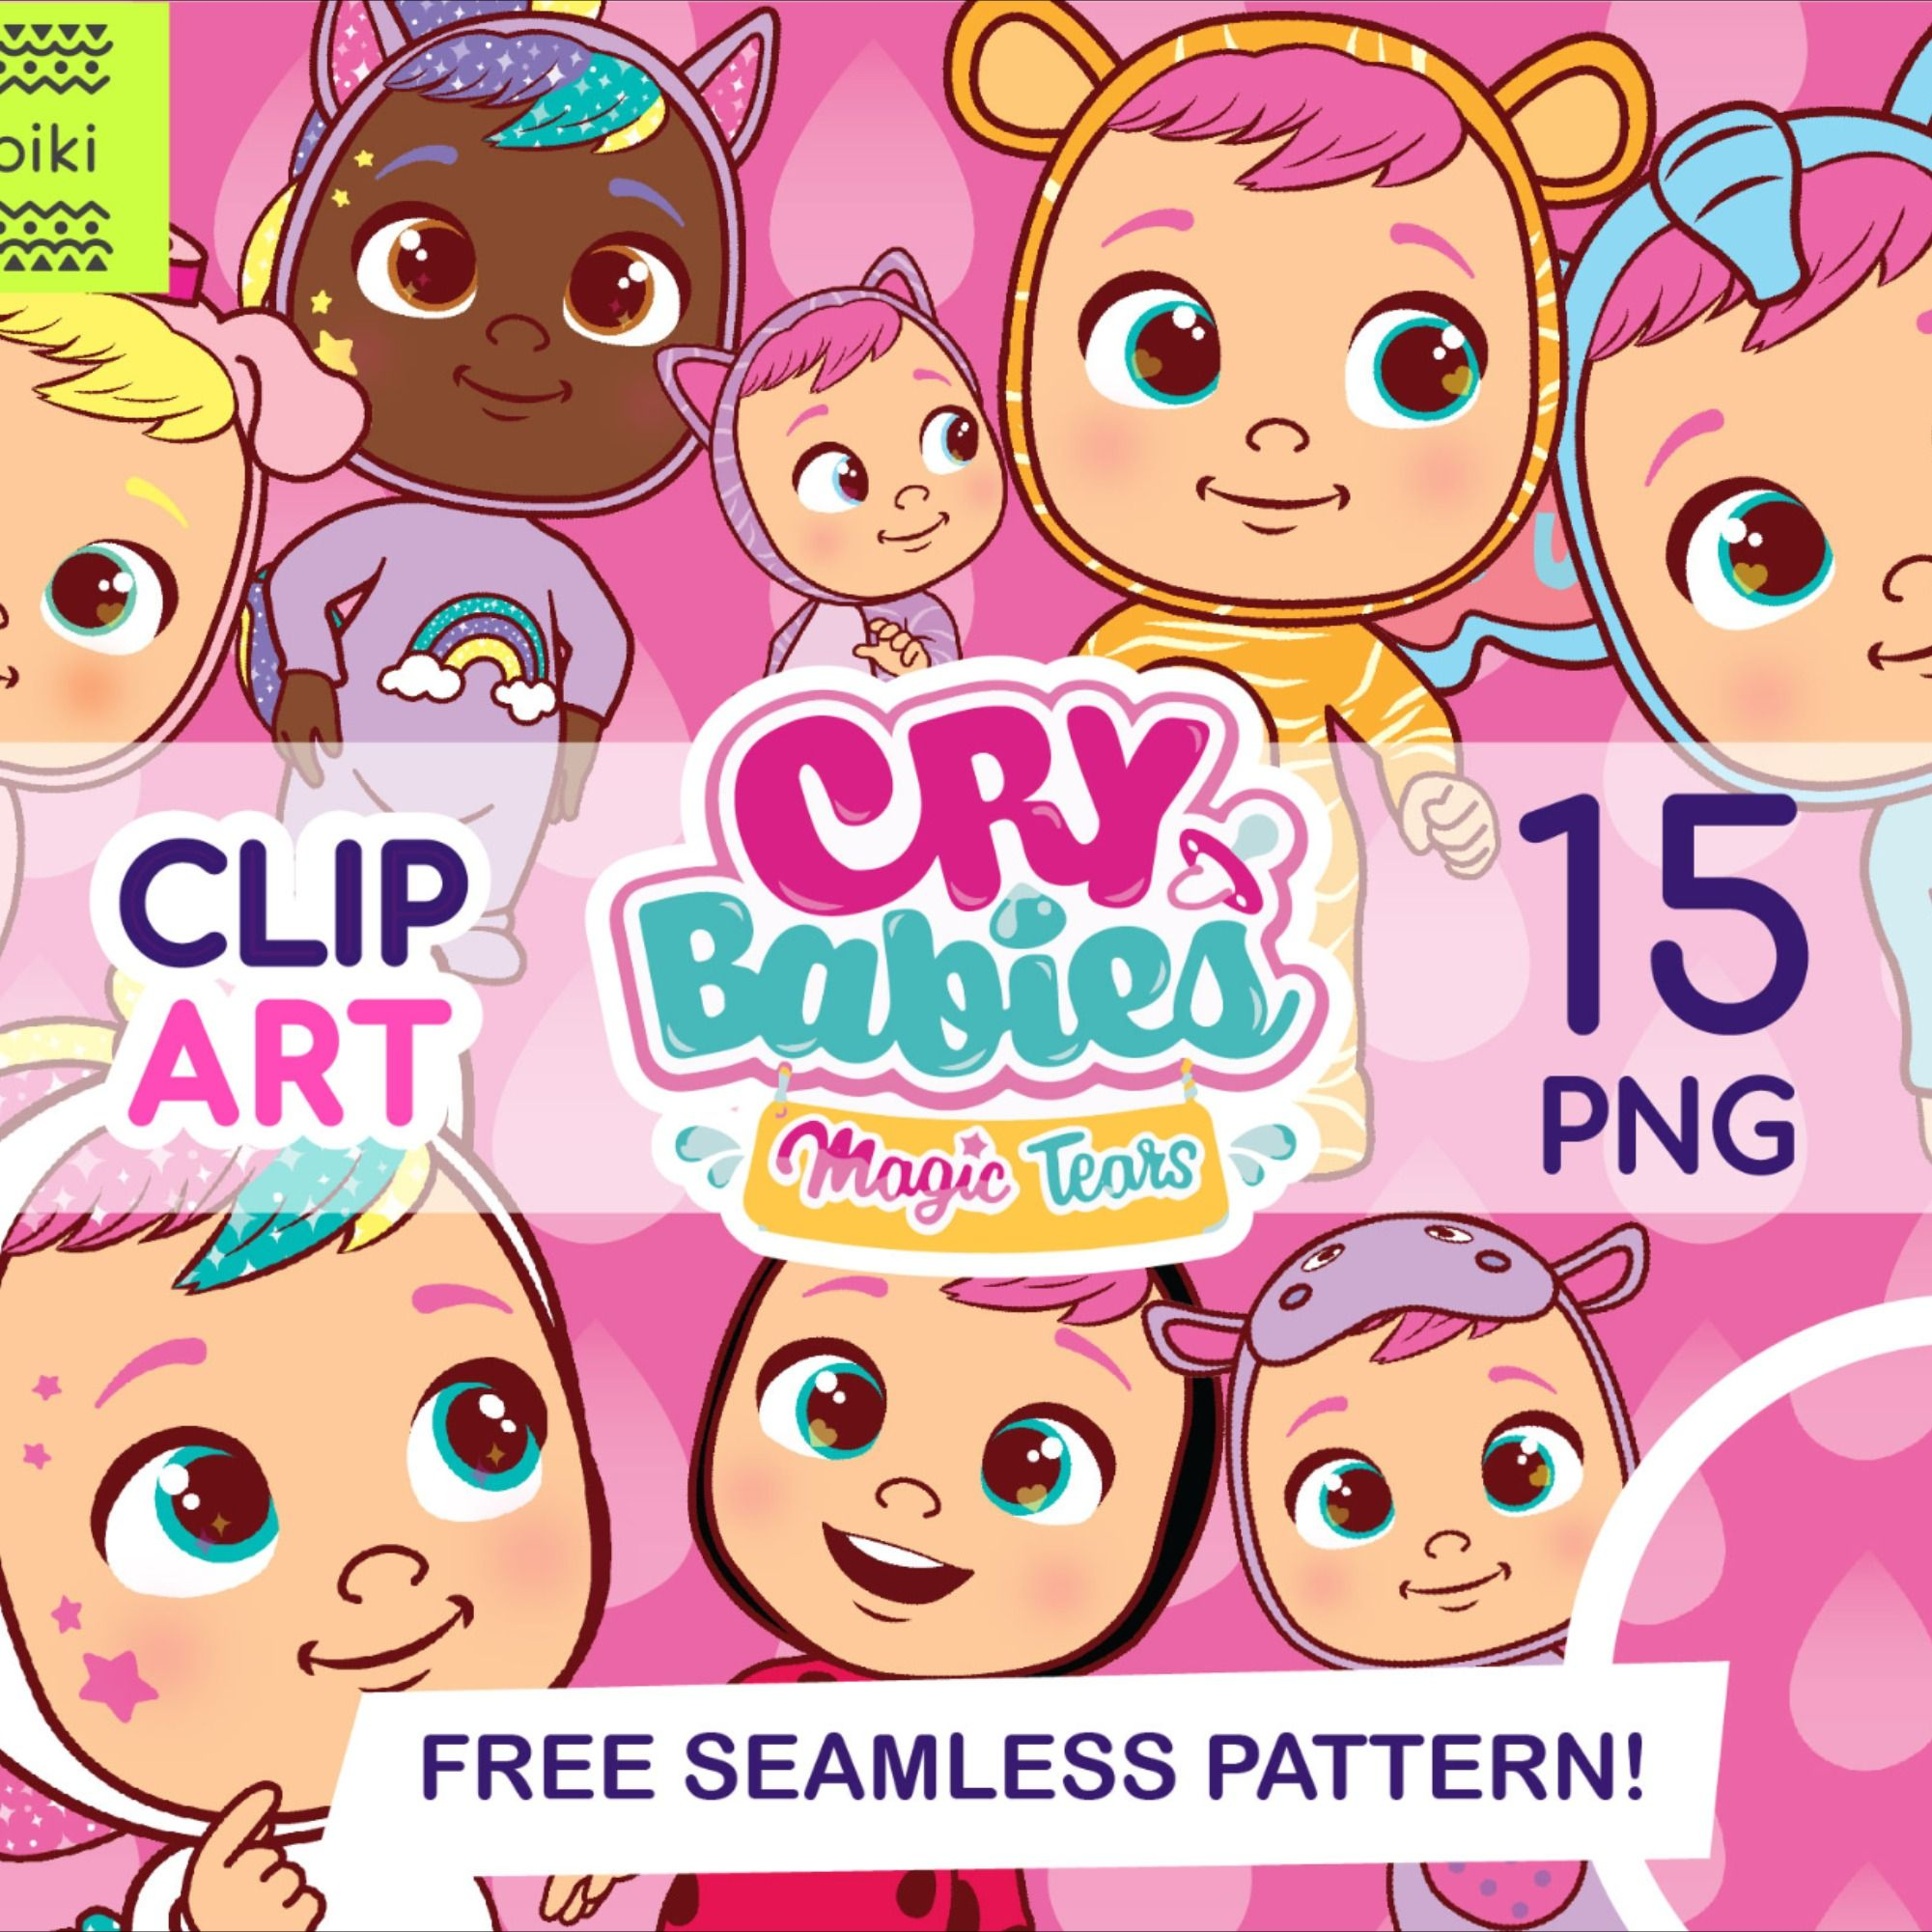 Instant Dowload Clipart Crybabies Clipart High Resolution Etsy In 2021 Clip Art Printing On Fabric Cry Baby